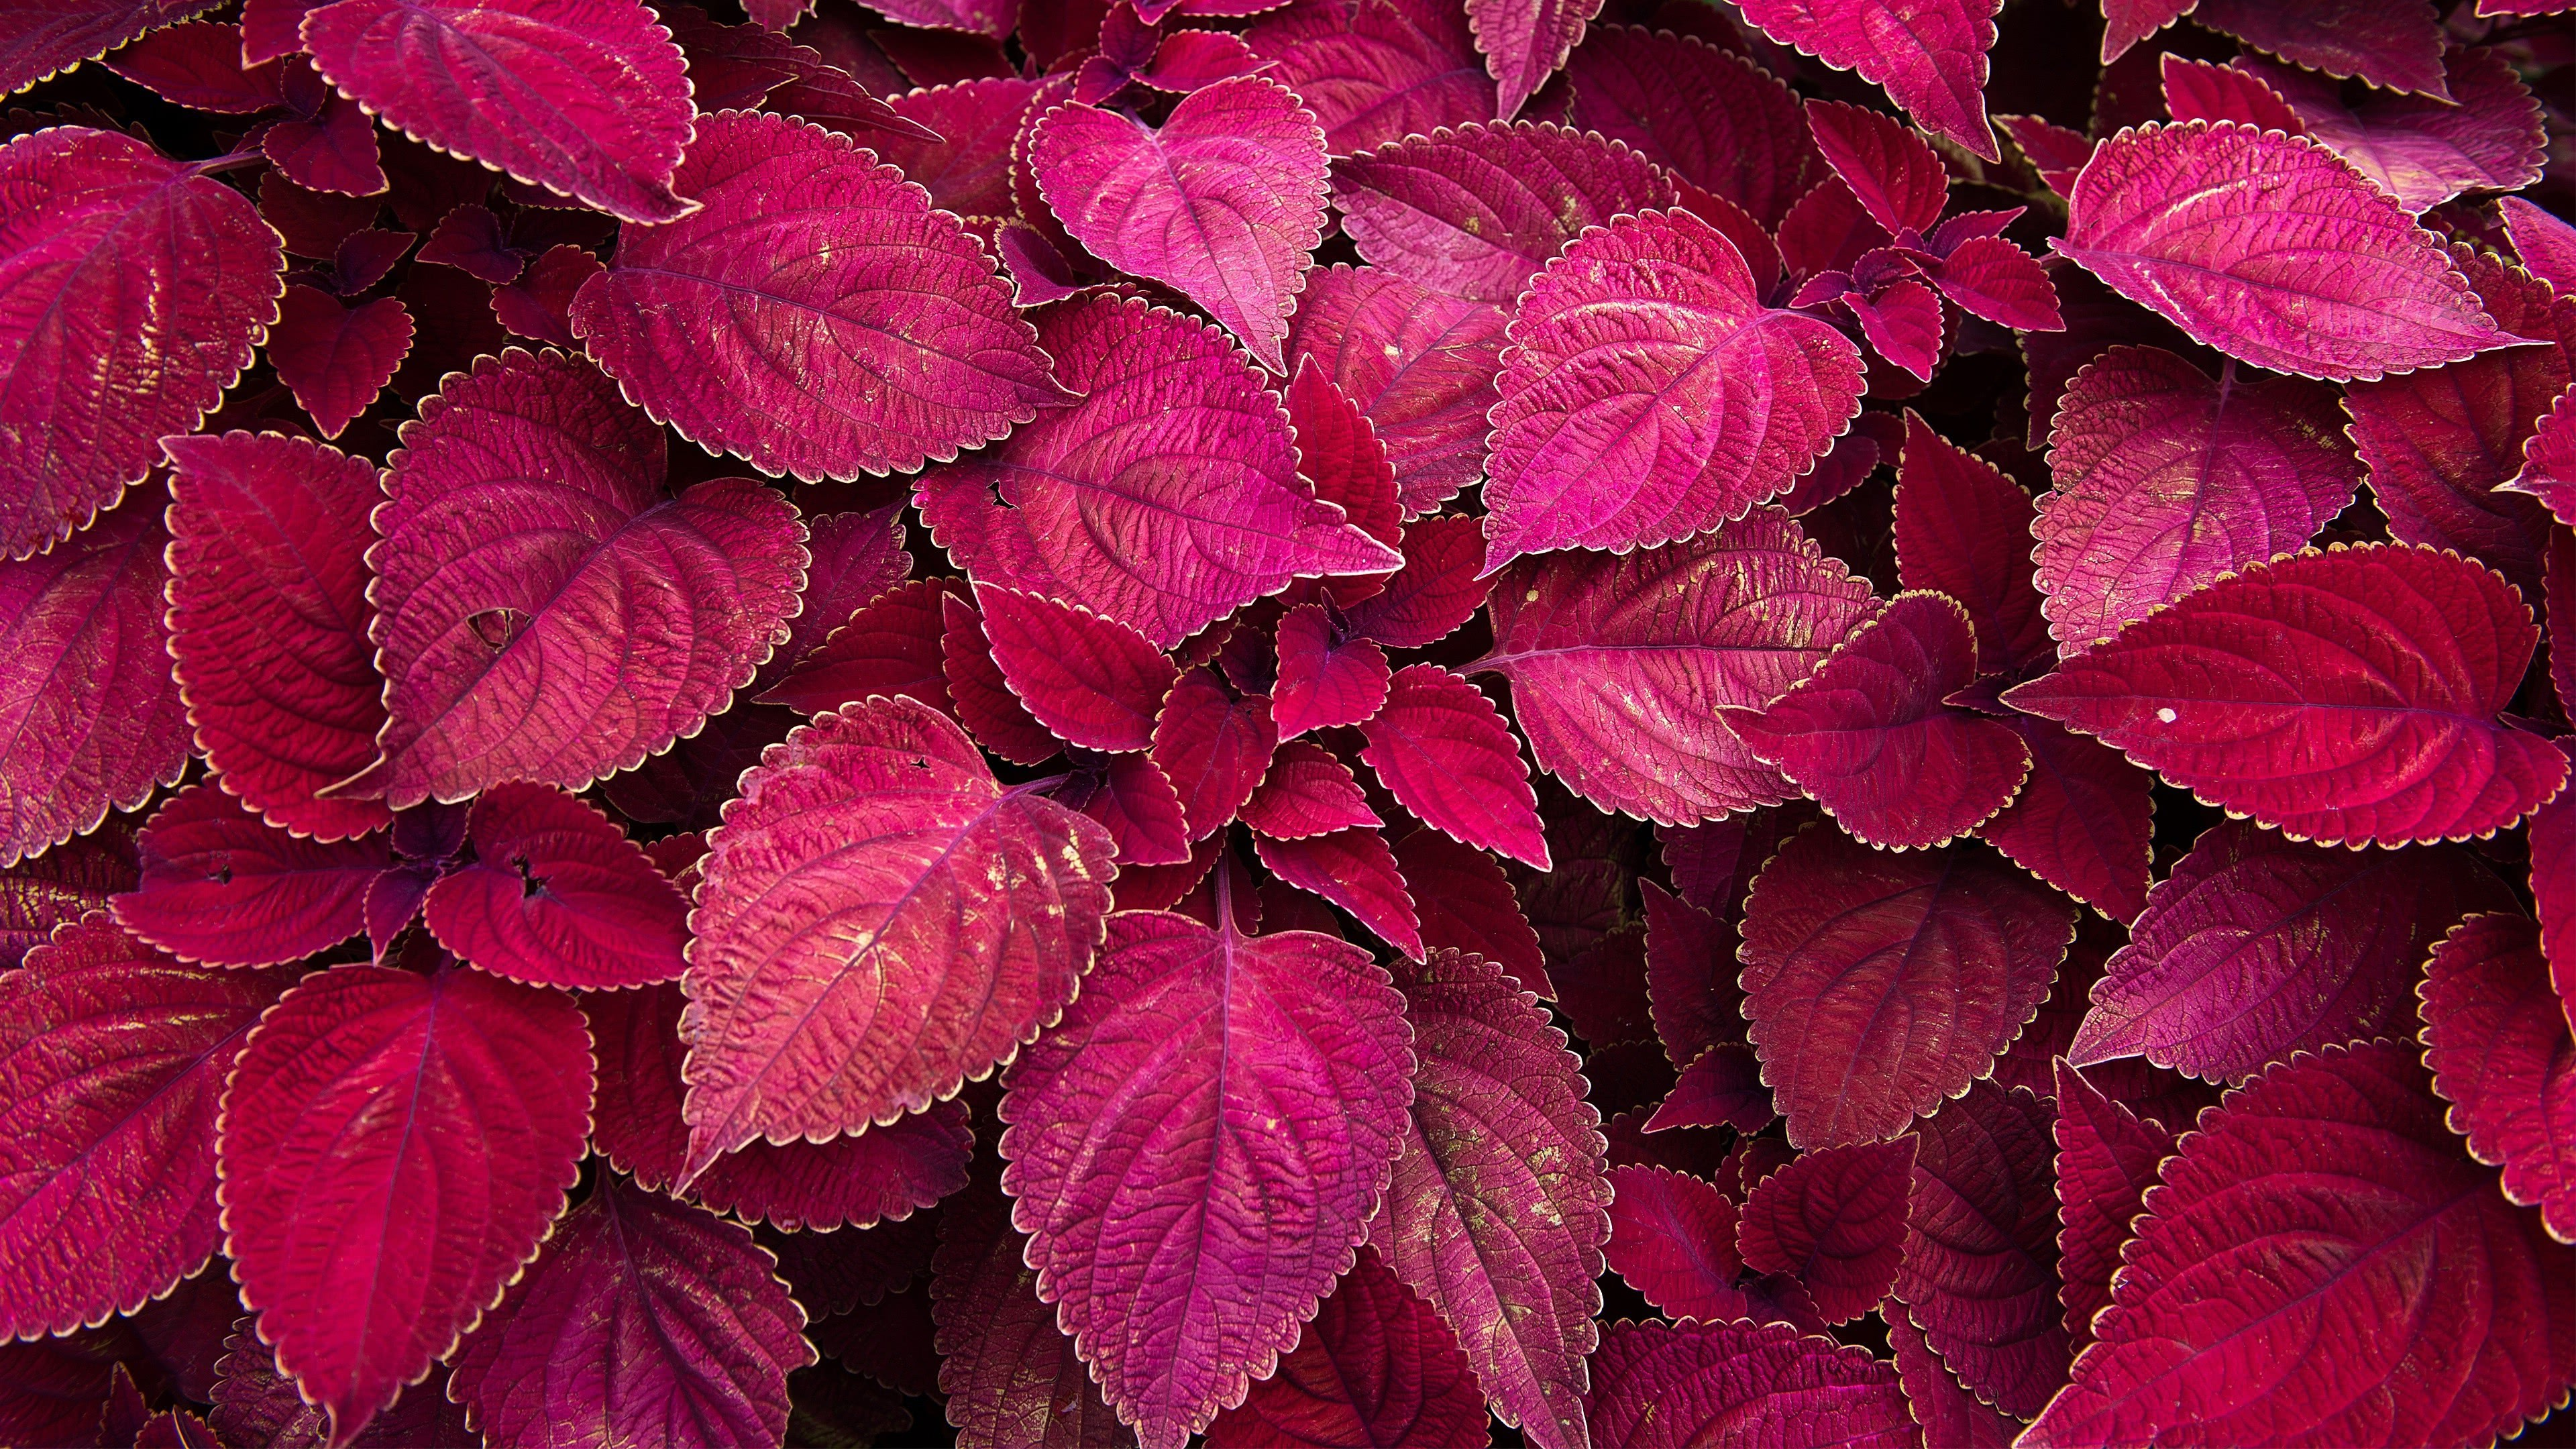 perilla leaves maroon uhd 4k wallpaper